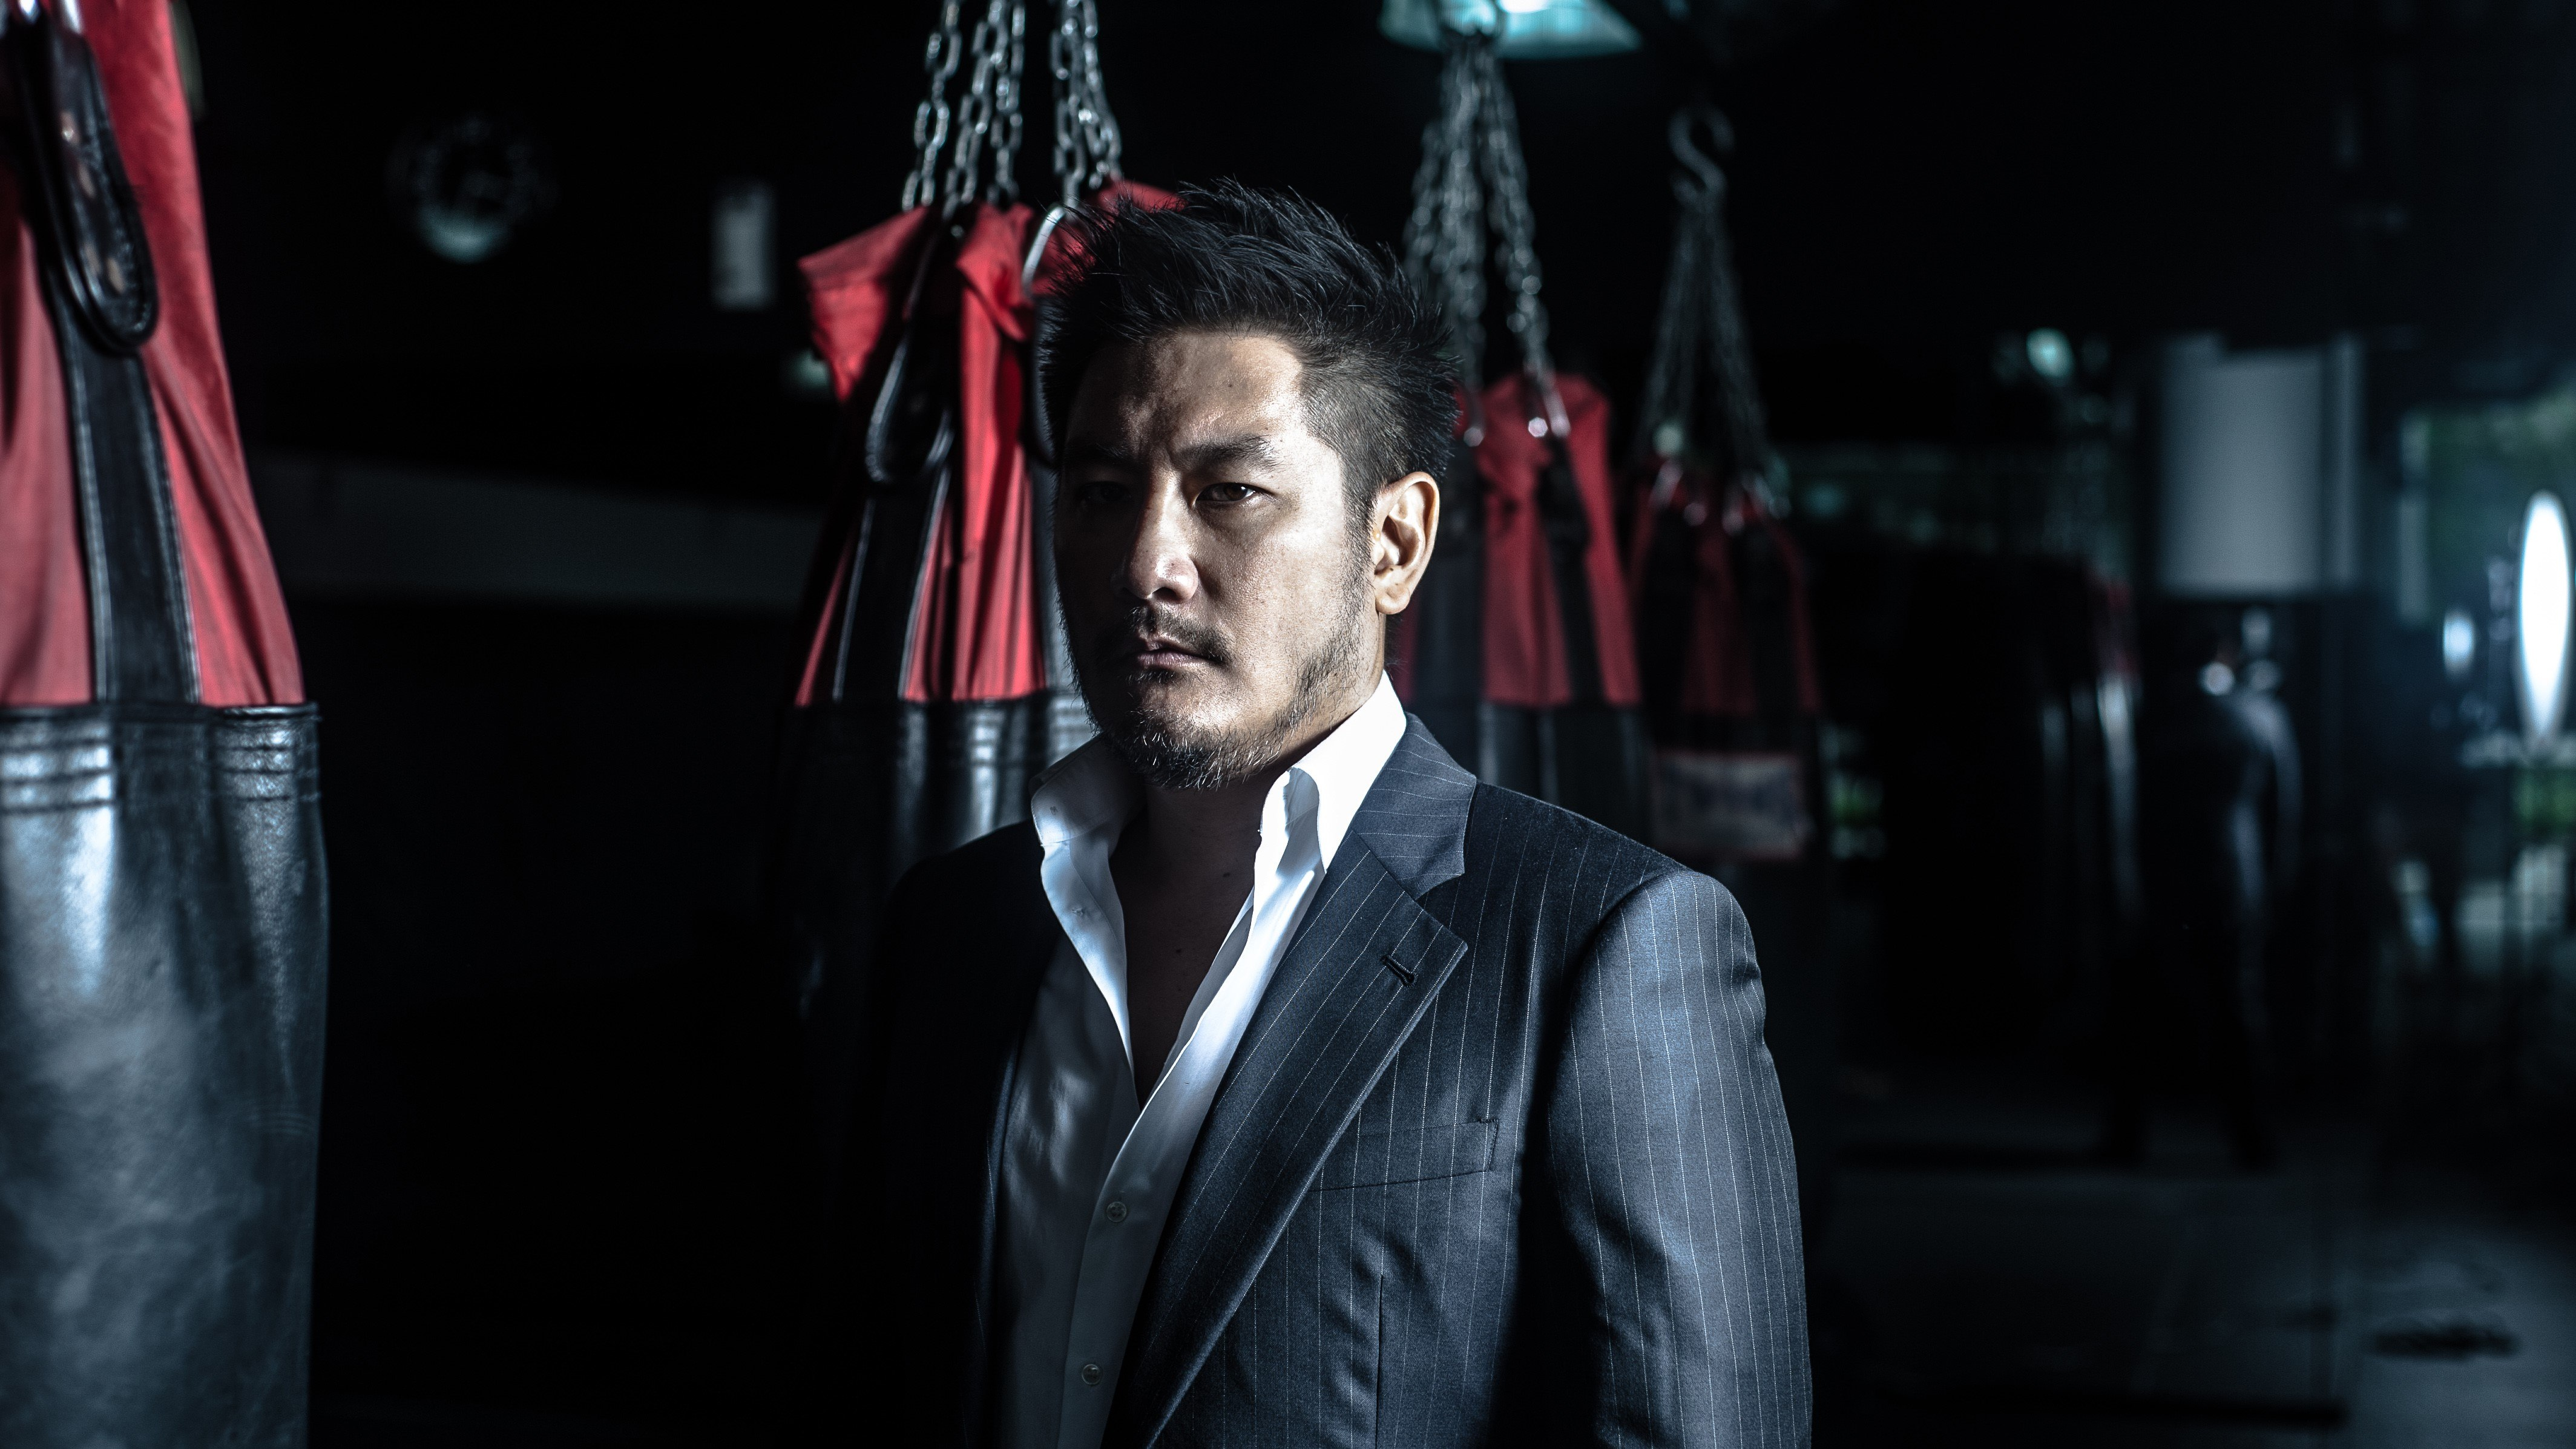 One Championship founder and CEO, Chatri Sityodtong